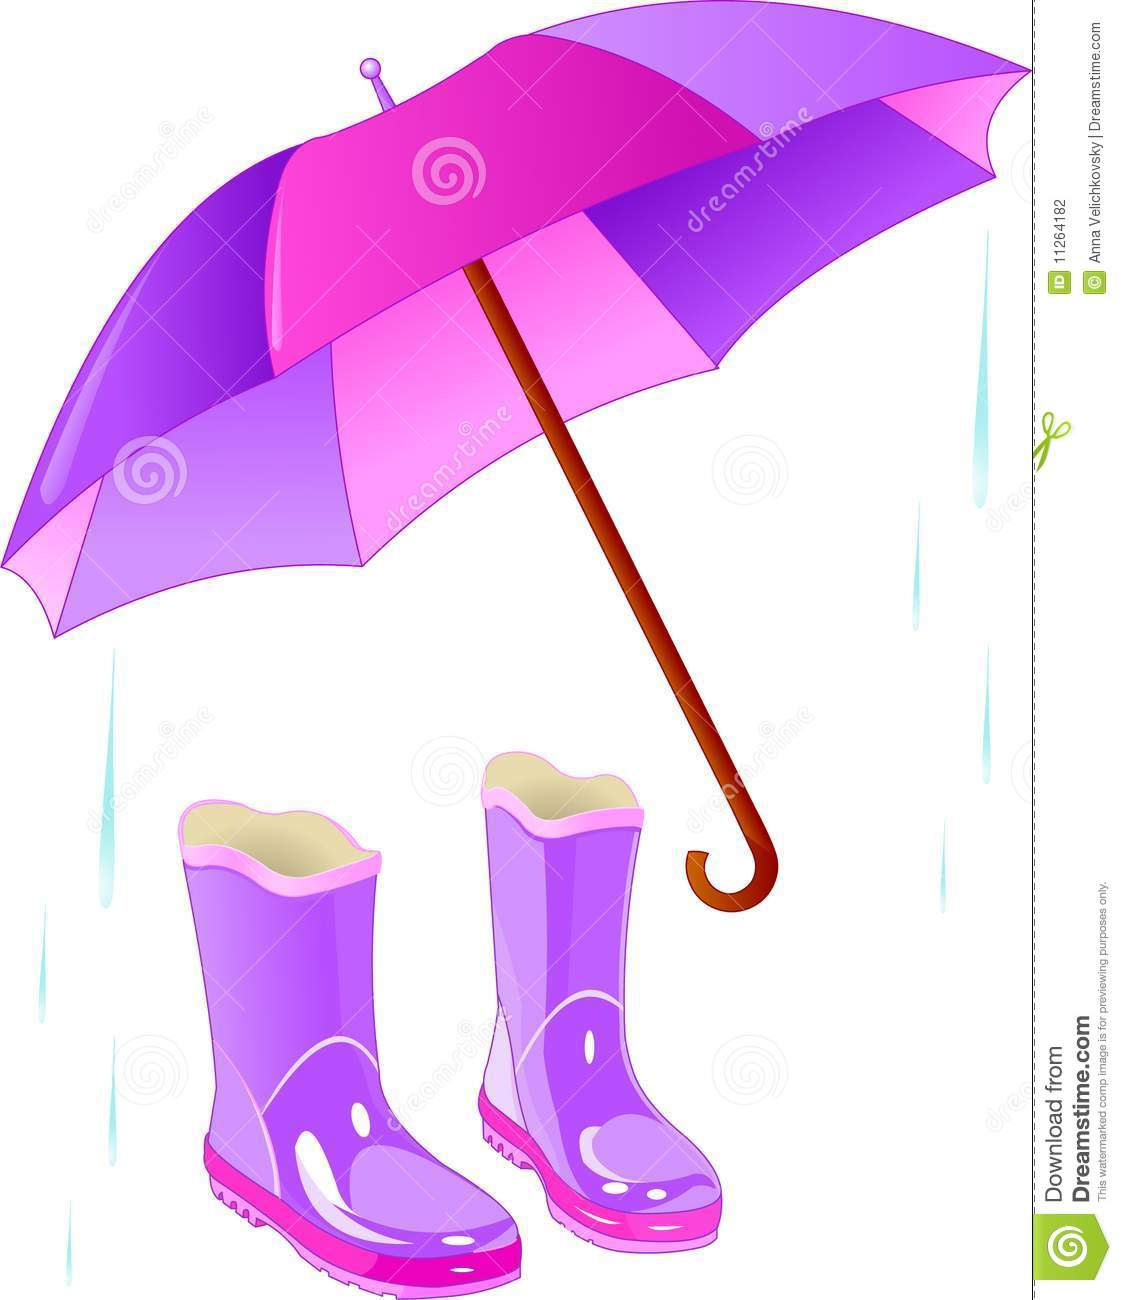 Boots clipart farmer We Umbrella And wear Stock